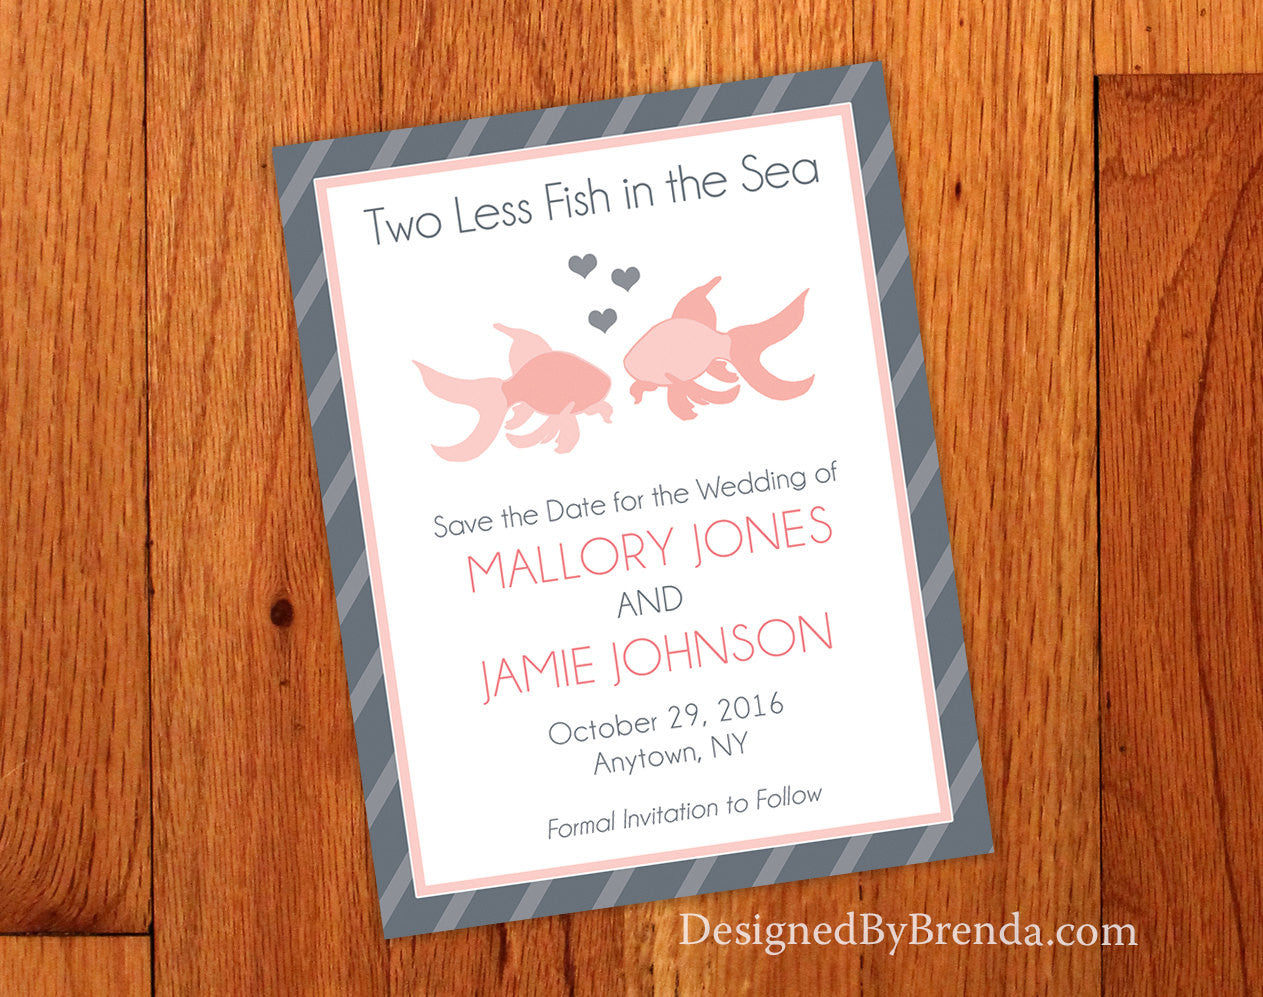 Two Less Fish in the Sea Save the Date - Card or Magnet, Any Colors